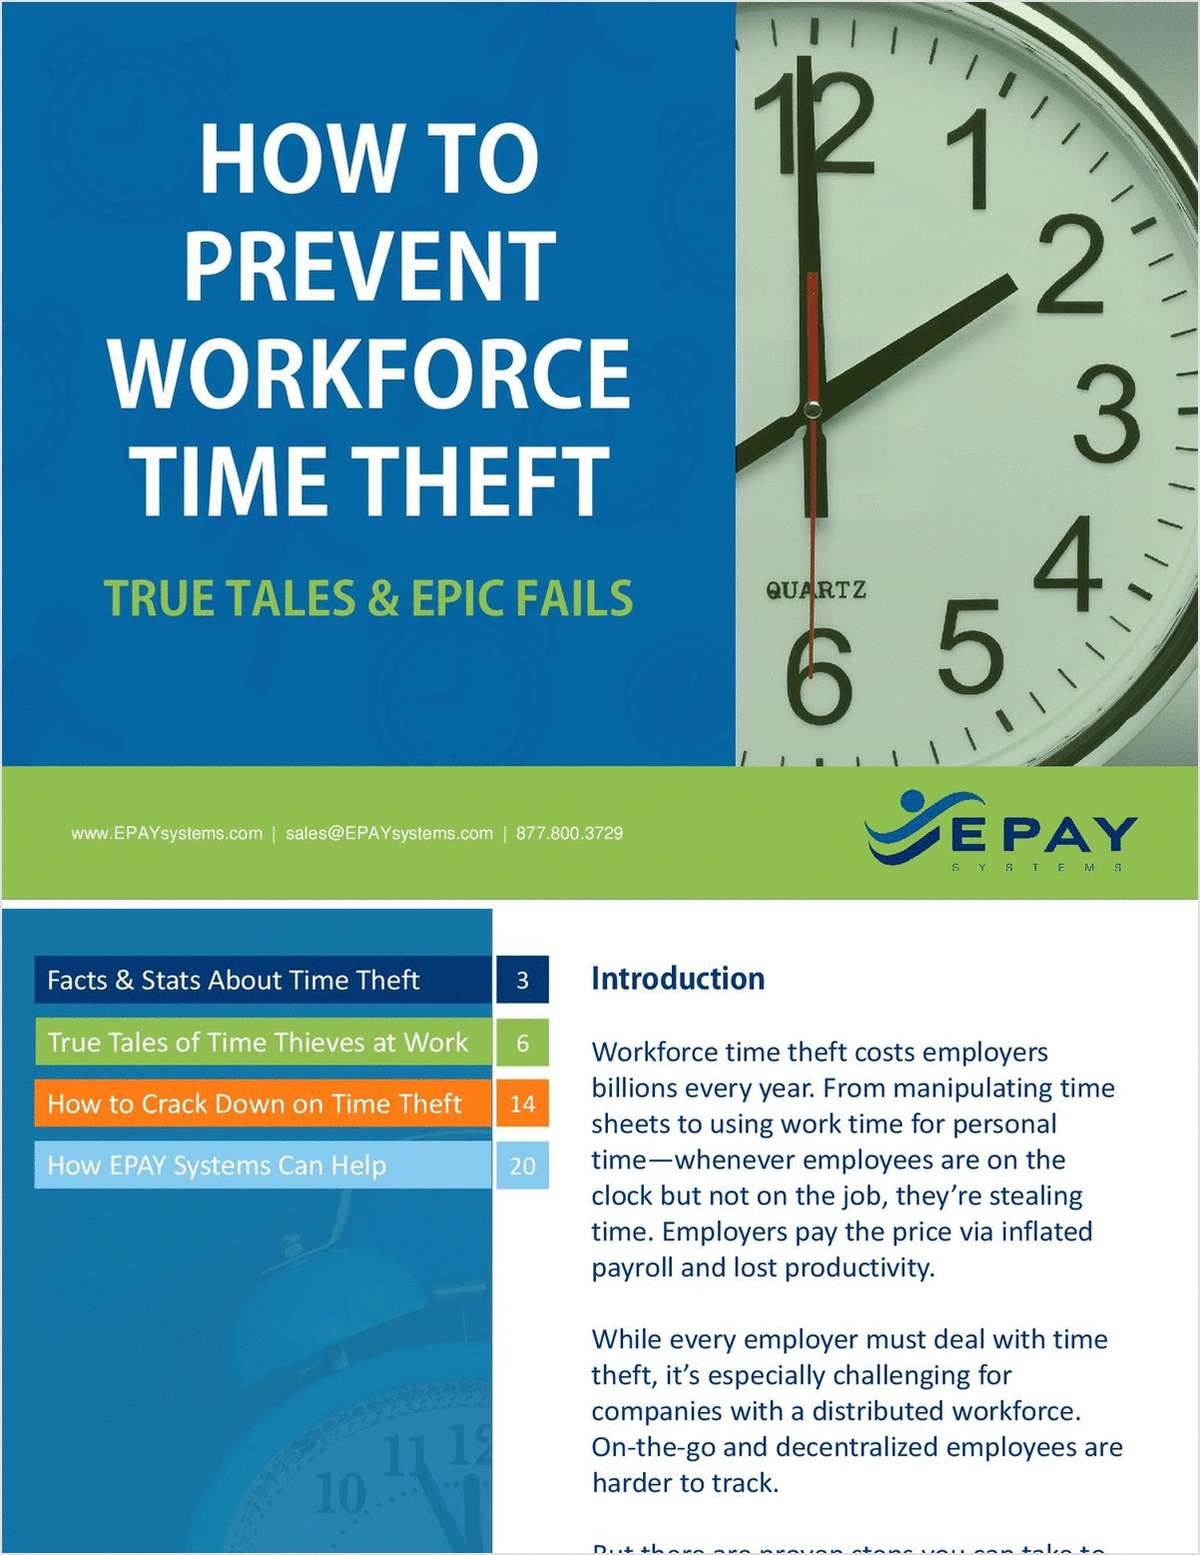 How to Prevent Workforce Time Theft